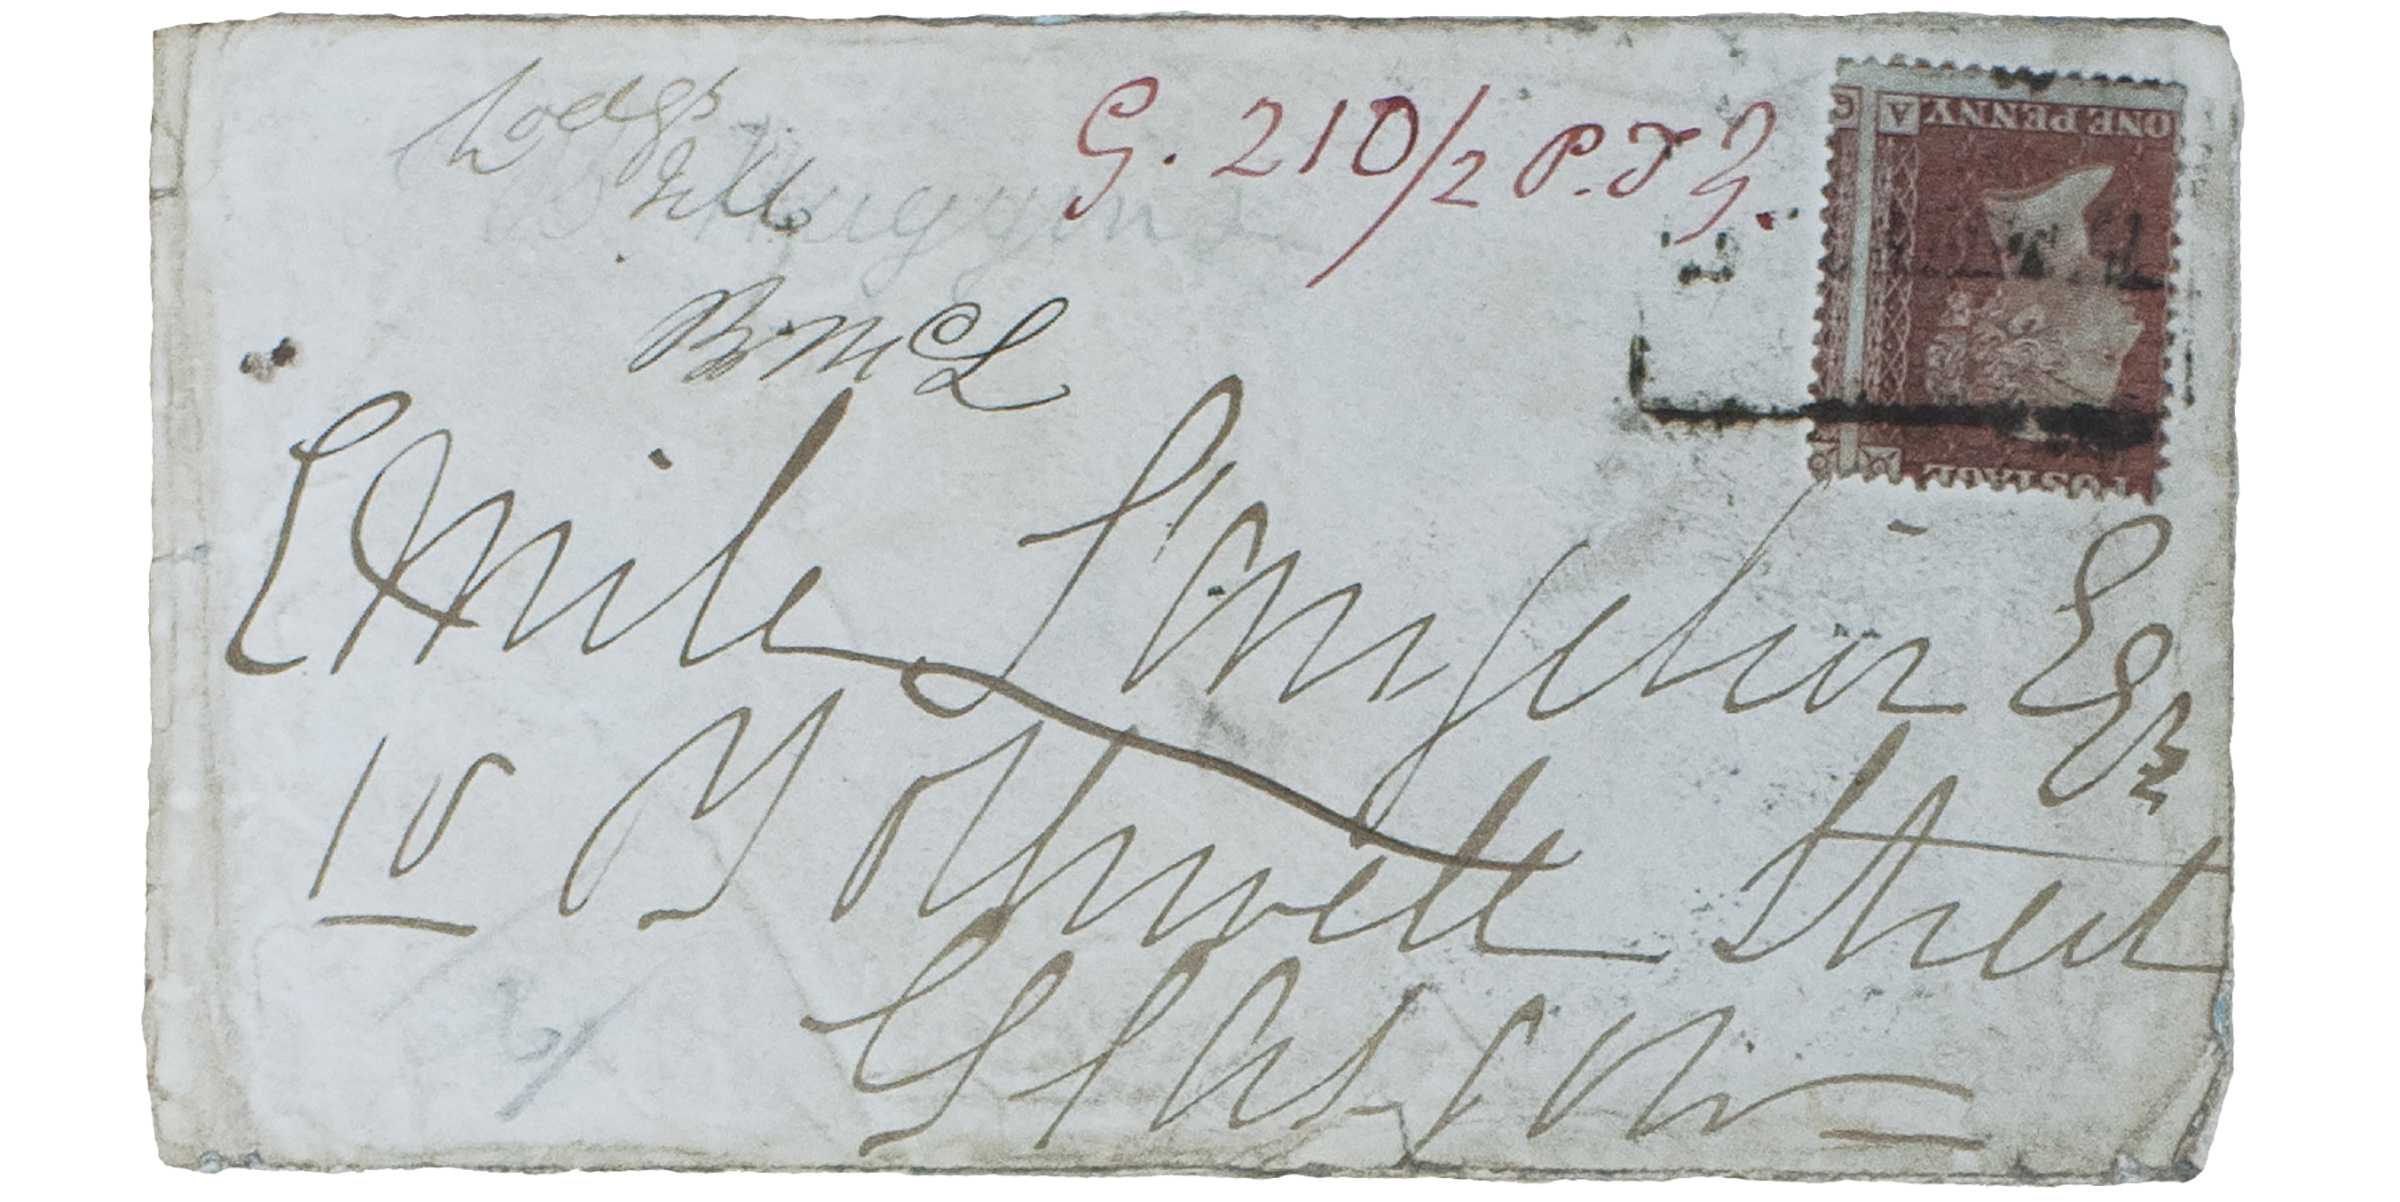 One of Madeleine Smith's letters to her lover from the Signet Library's collection.